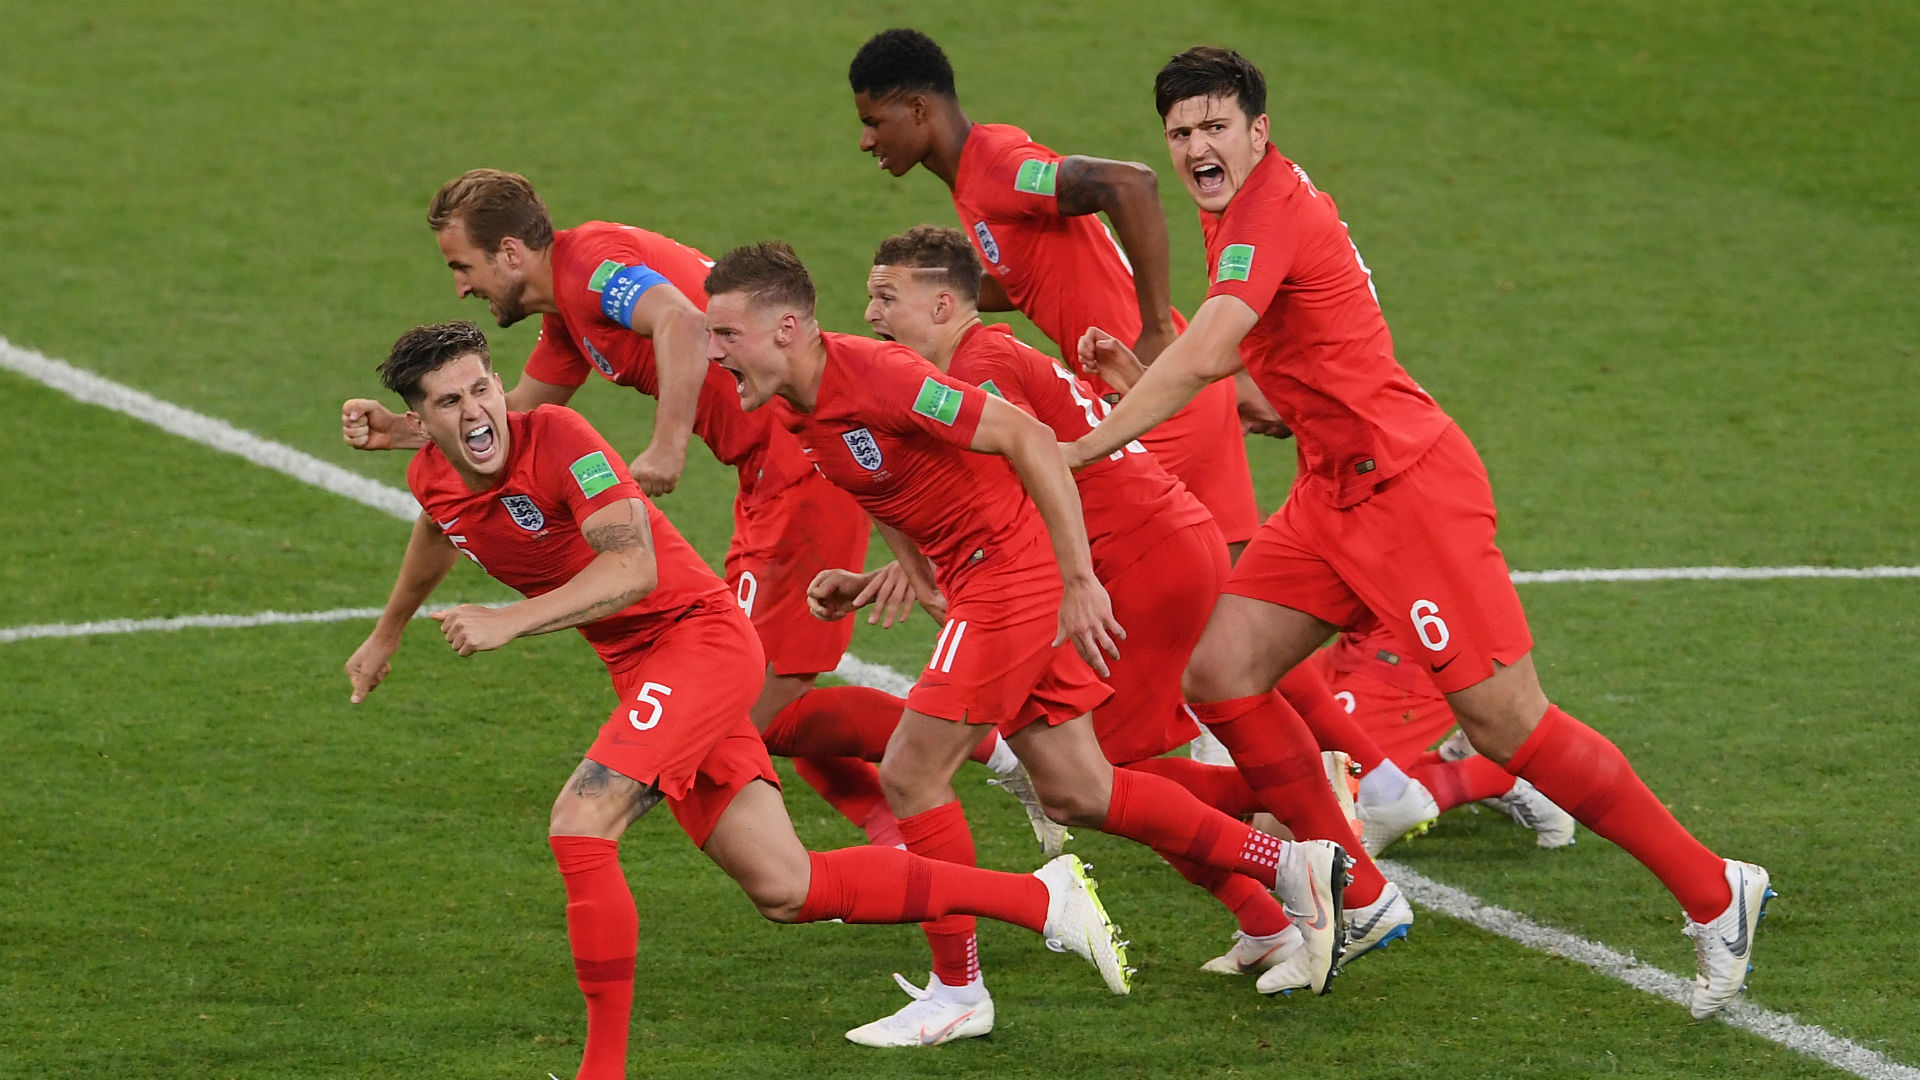 England beat Sweden to reach first World Cup semis in 28 years